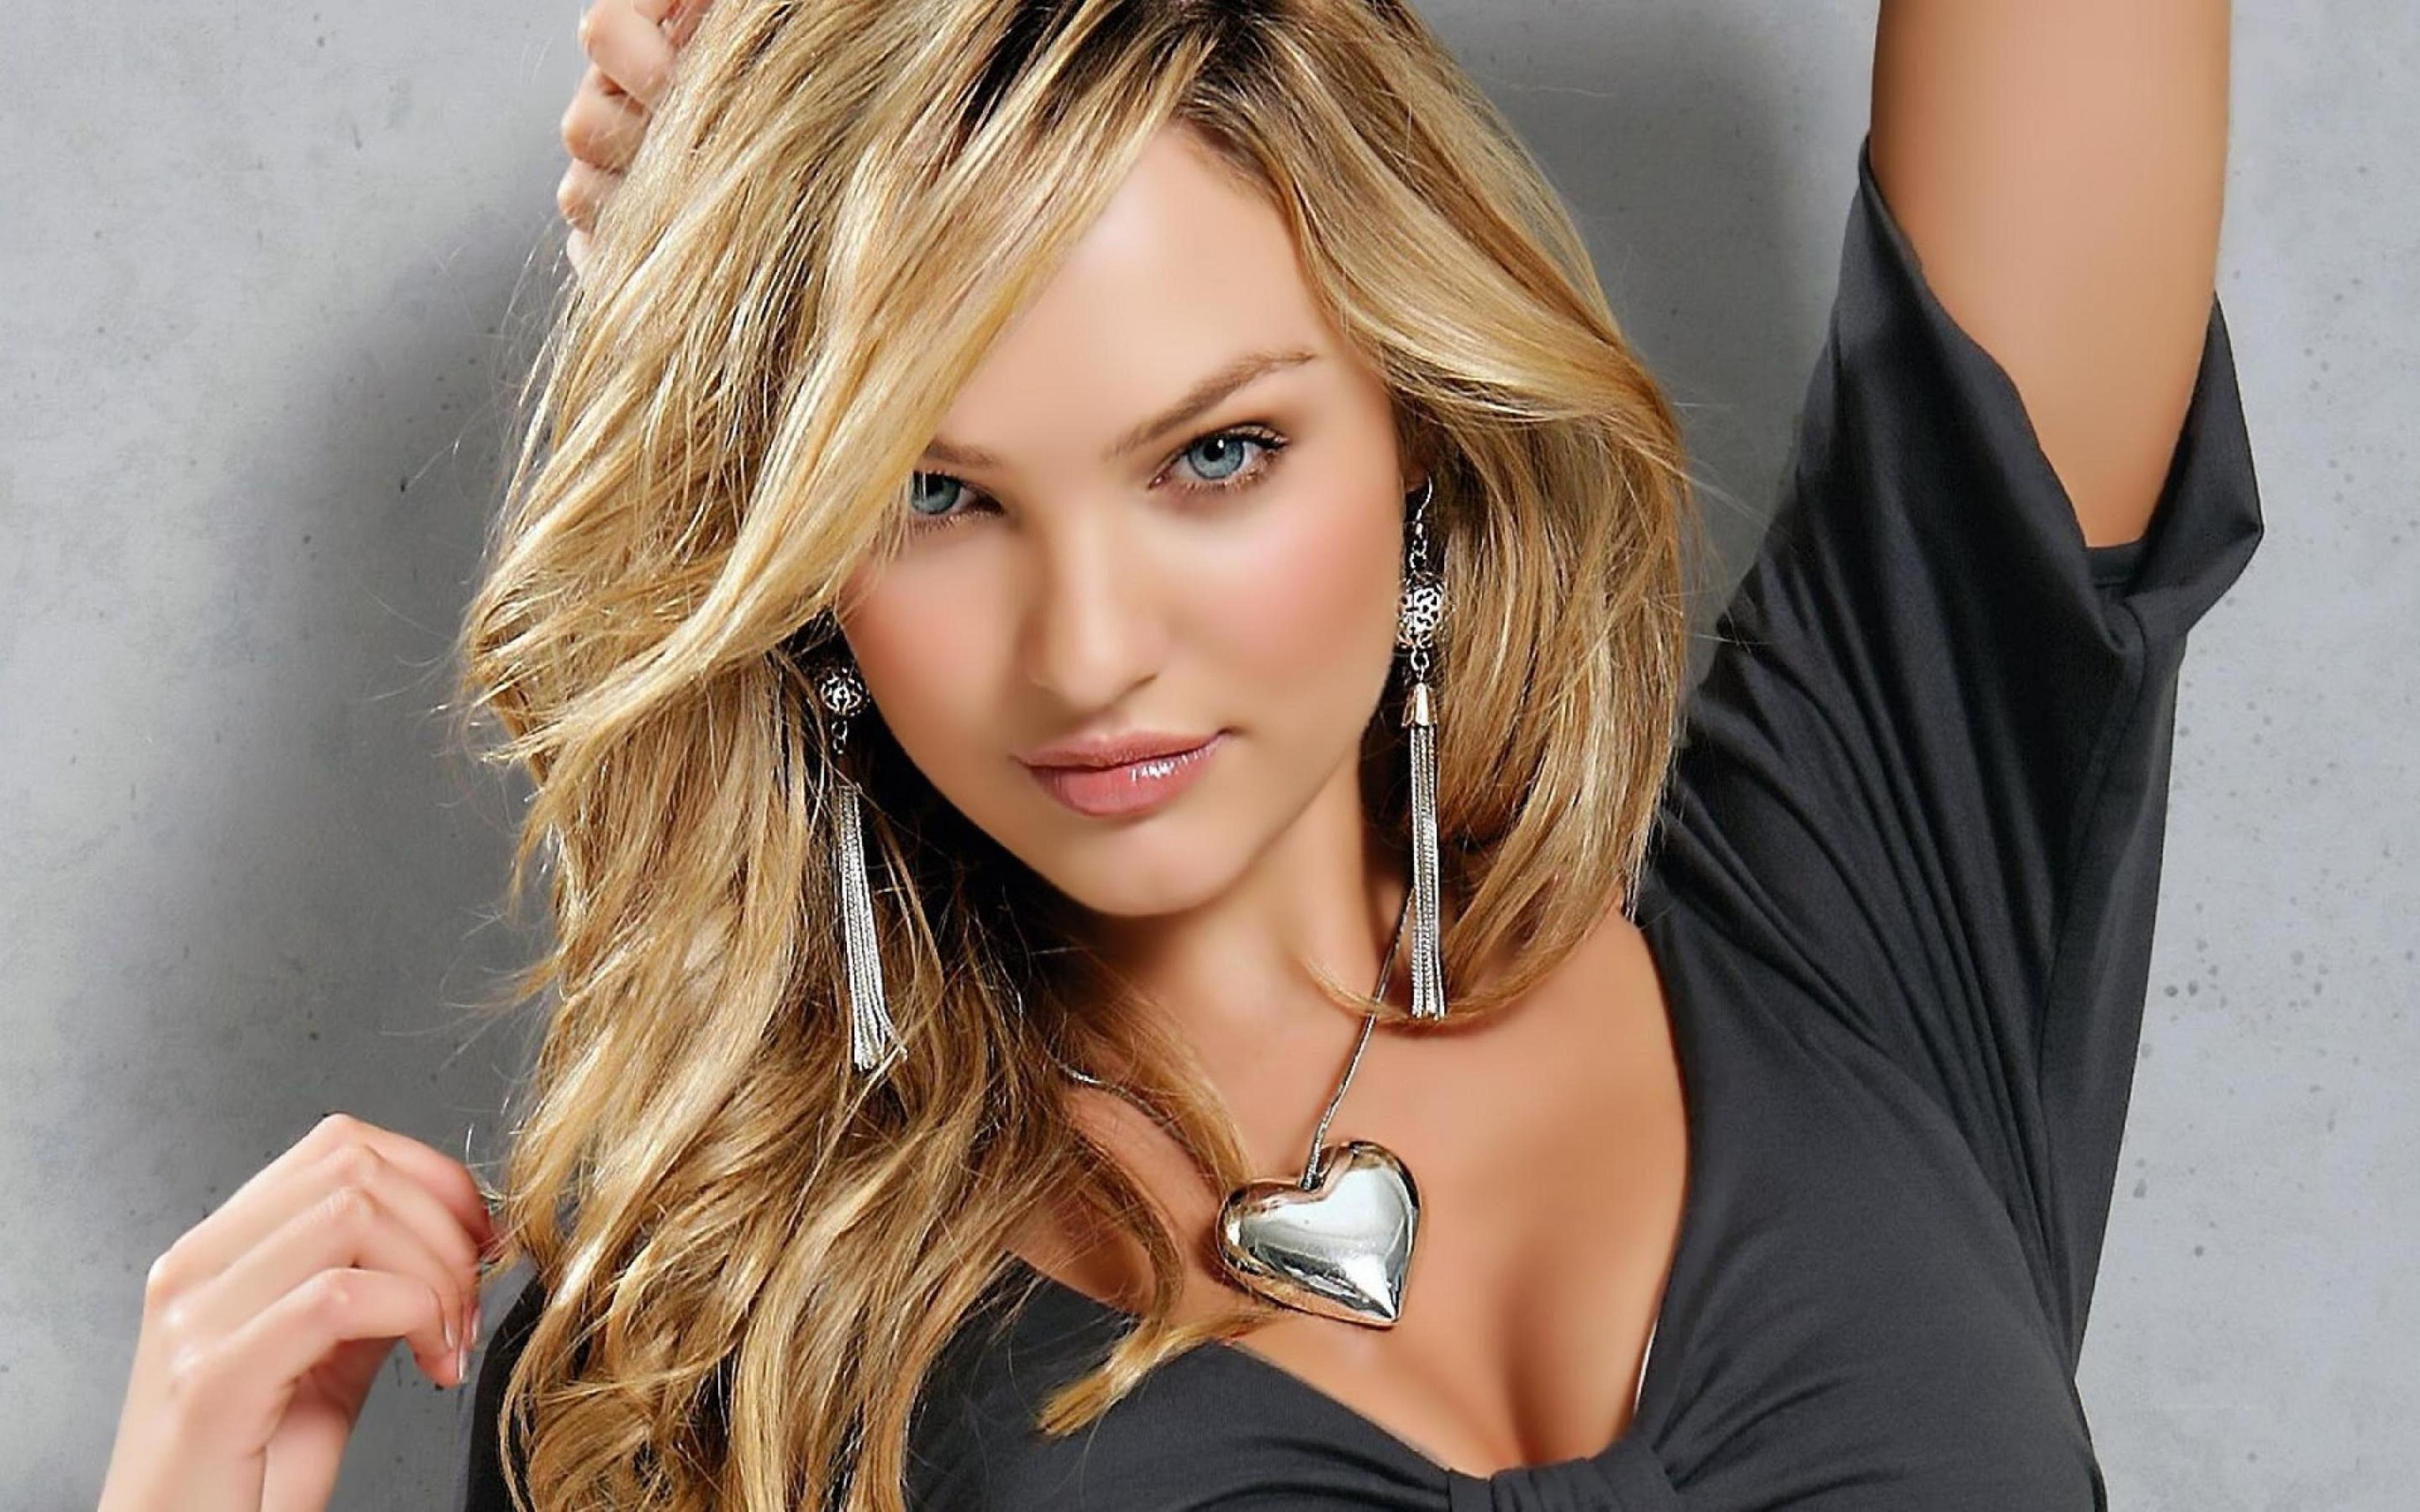 Candice Swanepoel A South African Model Wallpaper Download 5120x3200